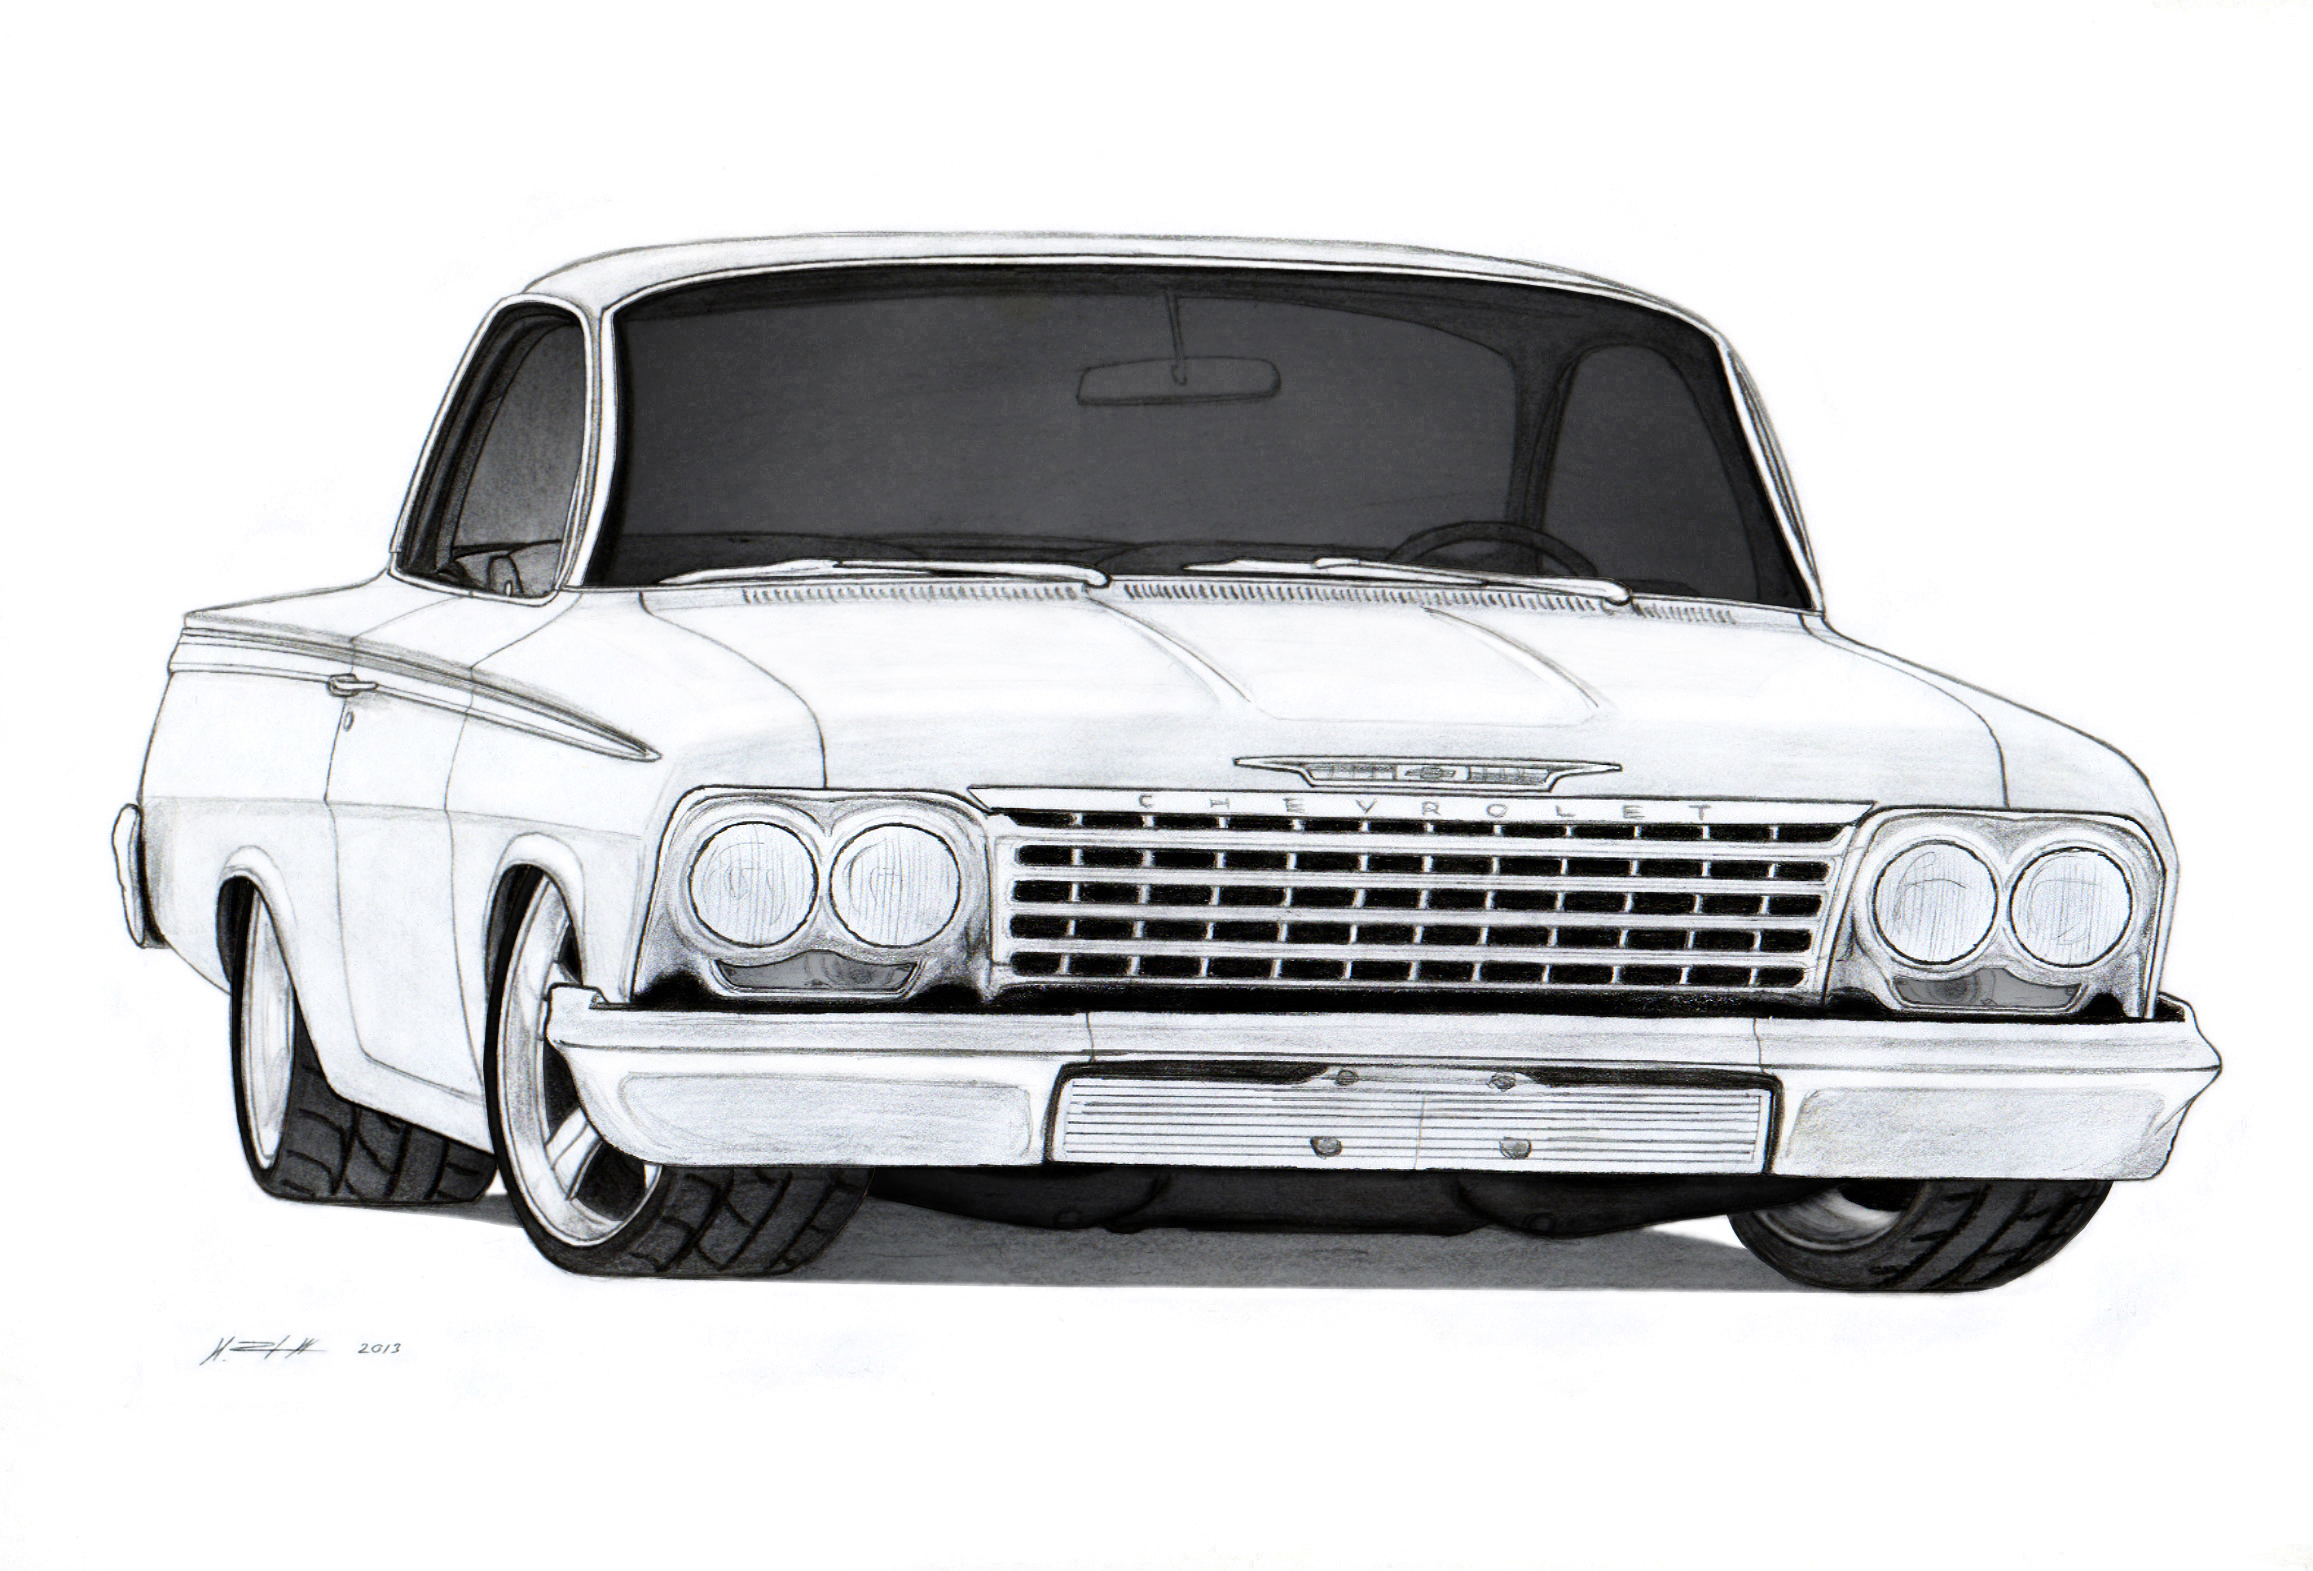 Drawn vehicle chevrolet Realistic Pencil Pic Images Drawing